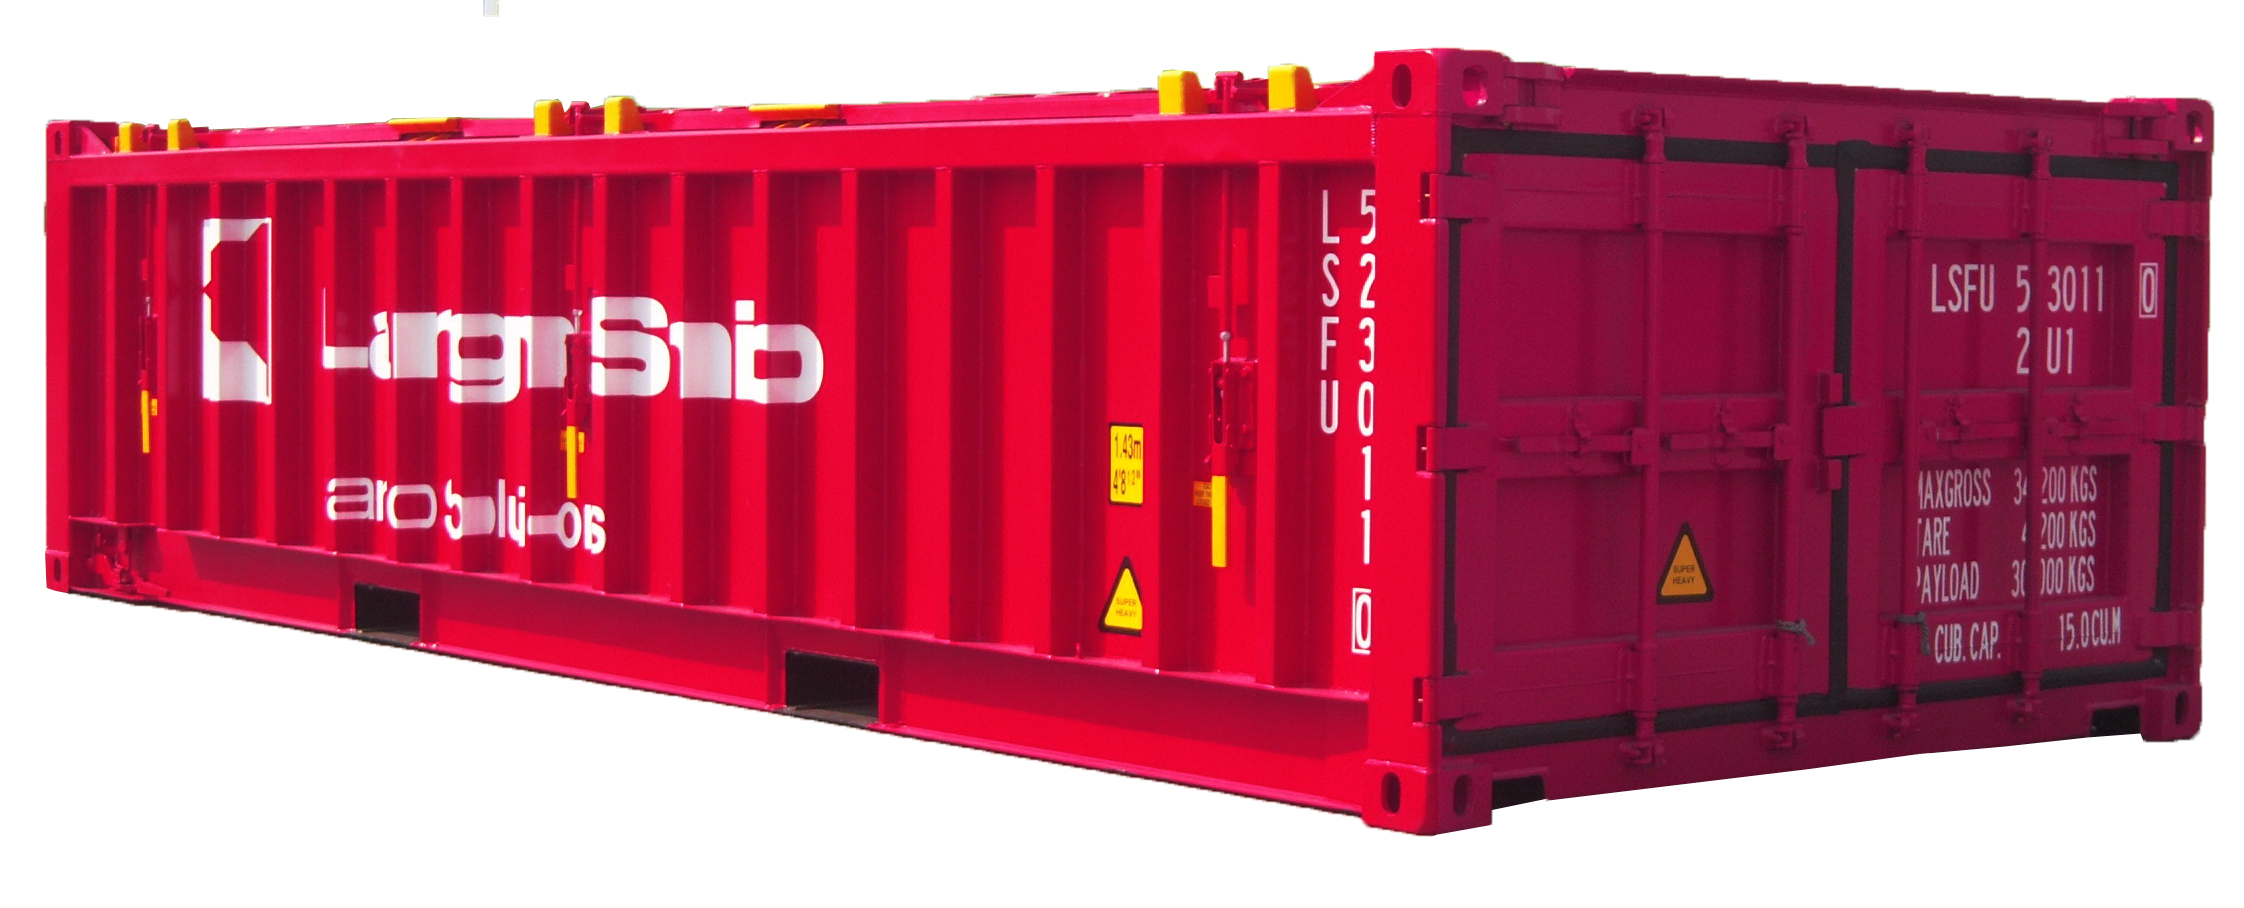 Magazin Container Box Intermodal And Containers The Digital And Printed